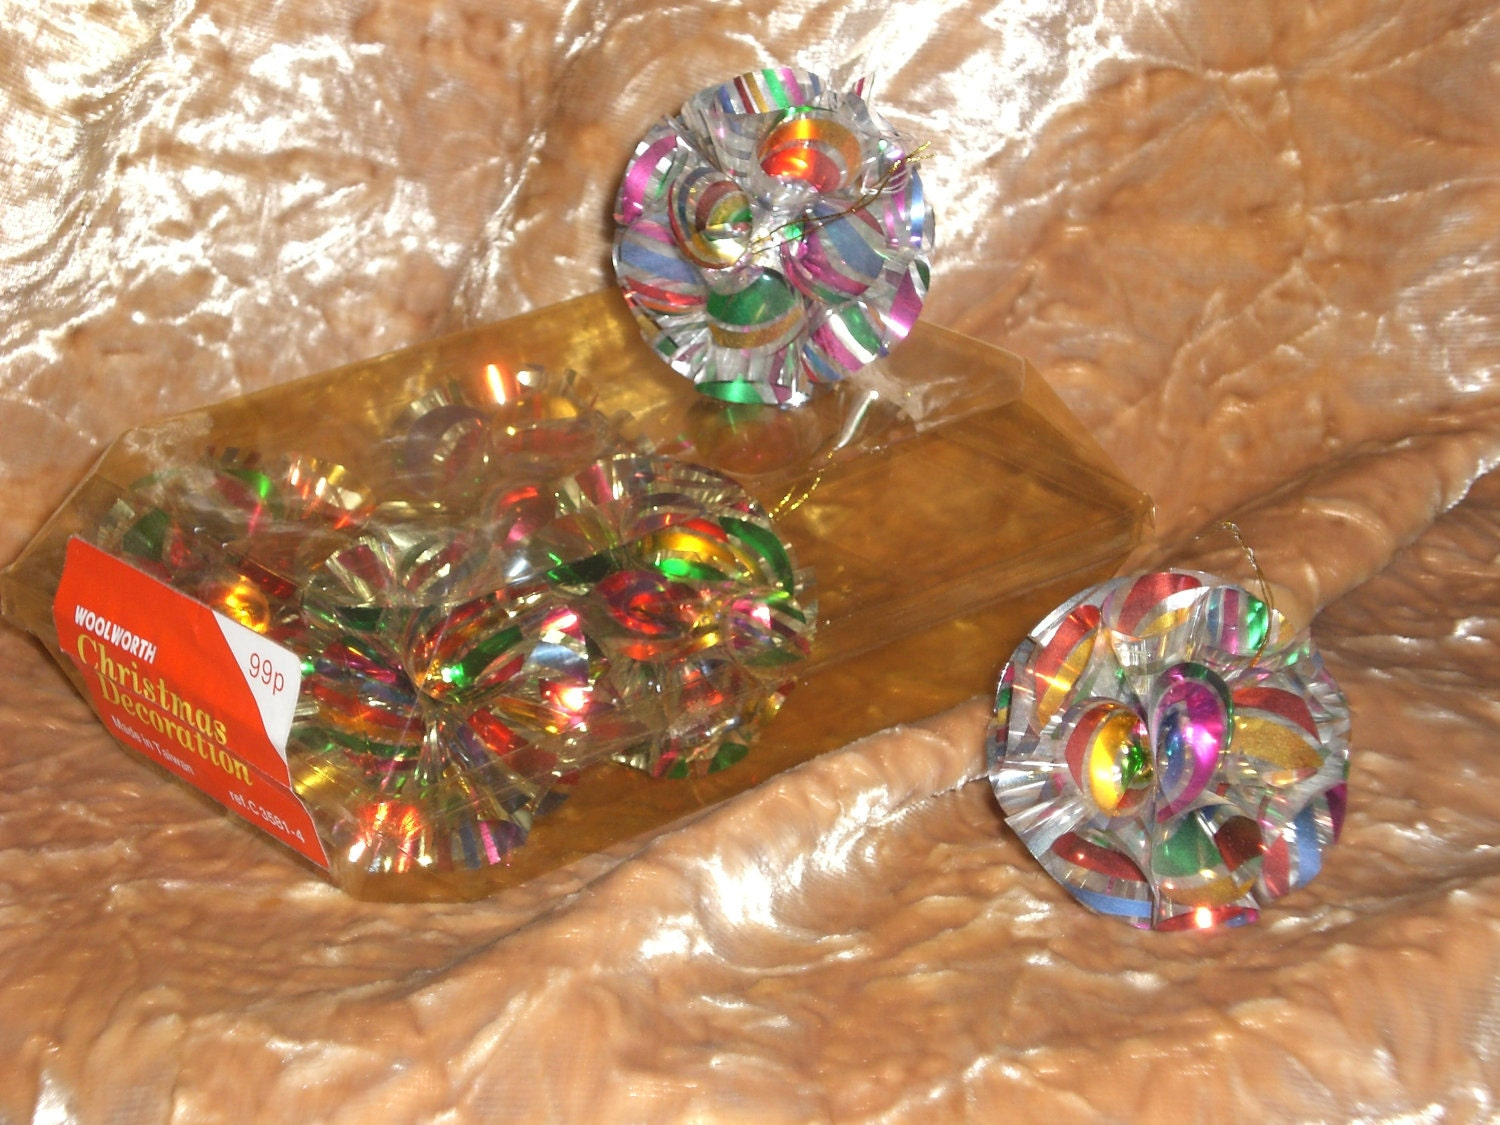 1970s woolworth christmas decorations by theglamourist on etsy for 1980s decoration